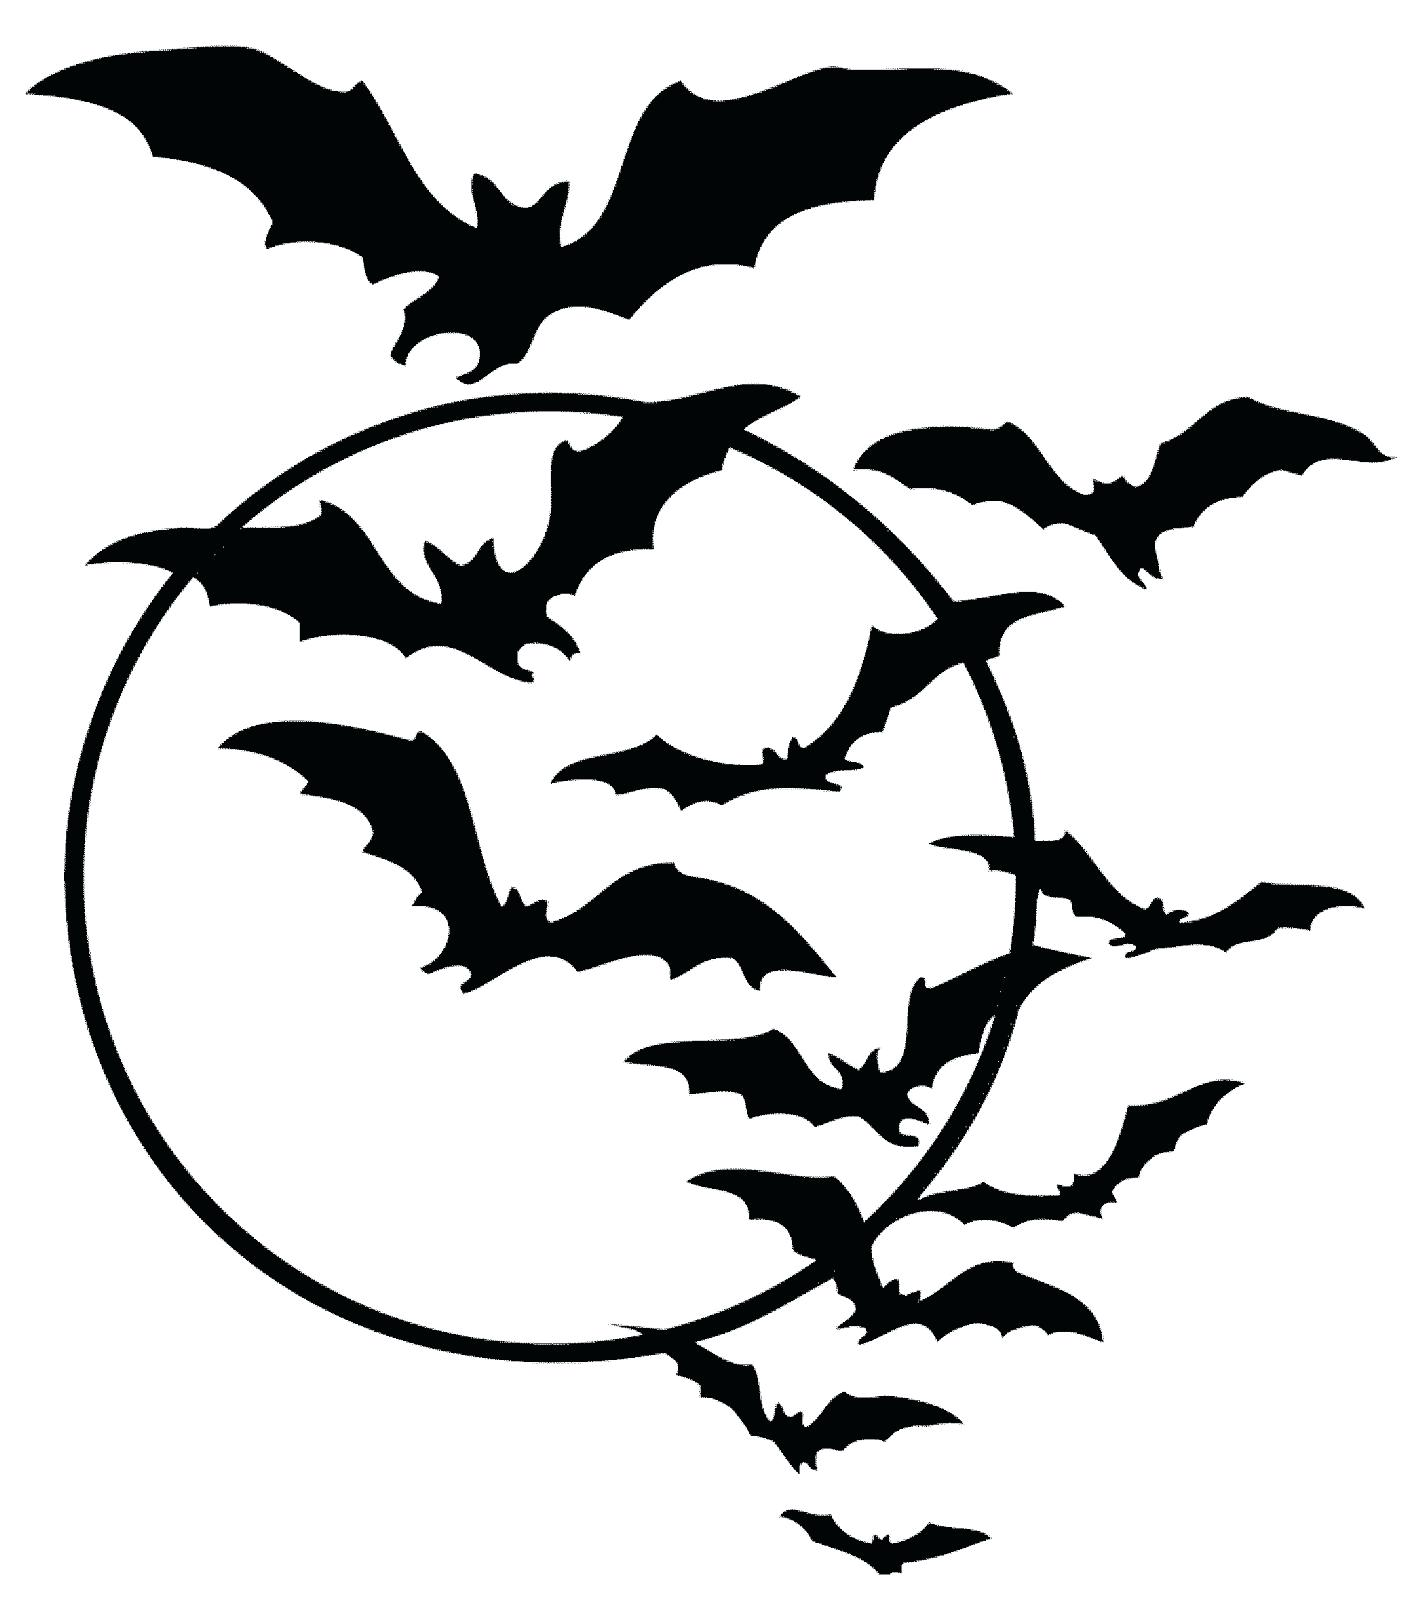 Bat Silhouette Printable At Getdrawings